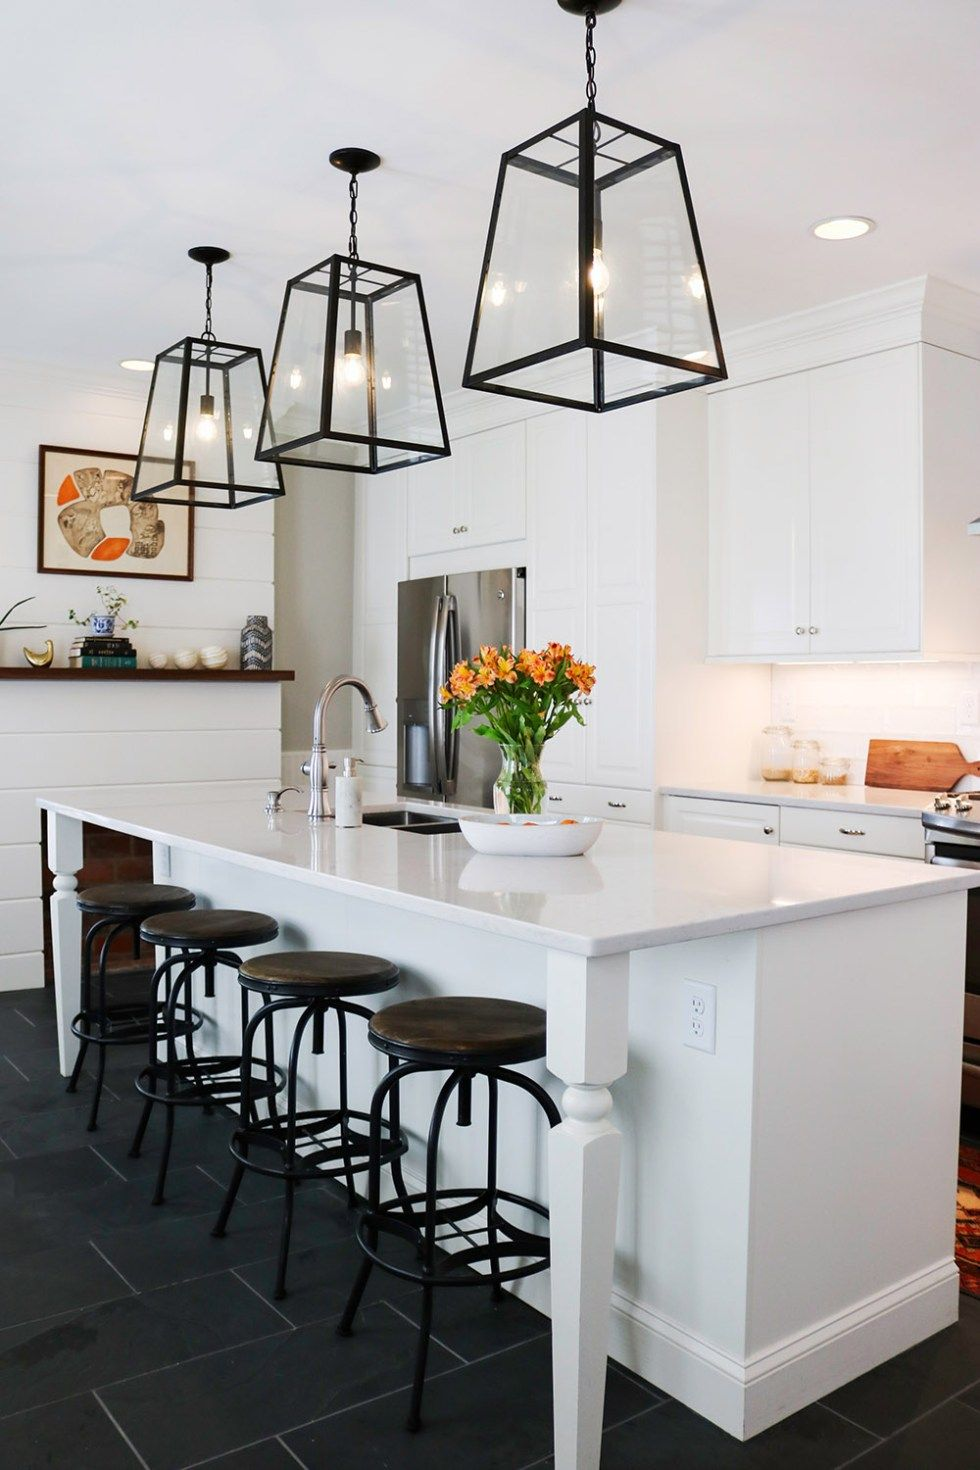 historic fells point row house ikea kitchen remodel | kitchen design